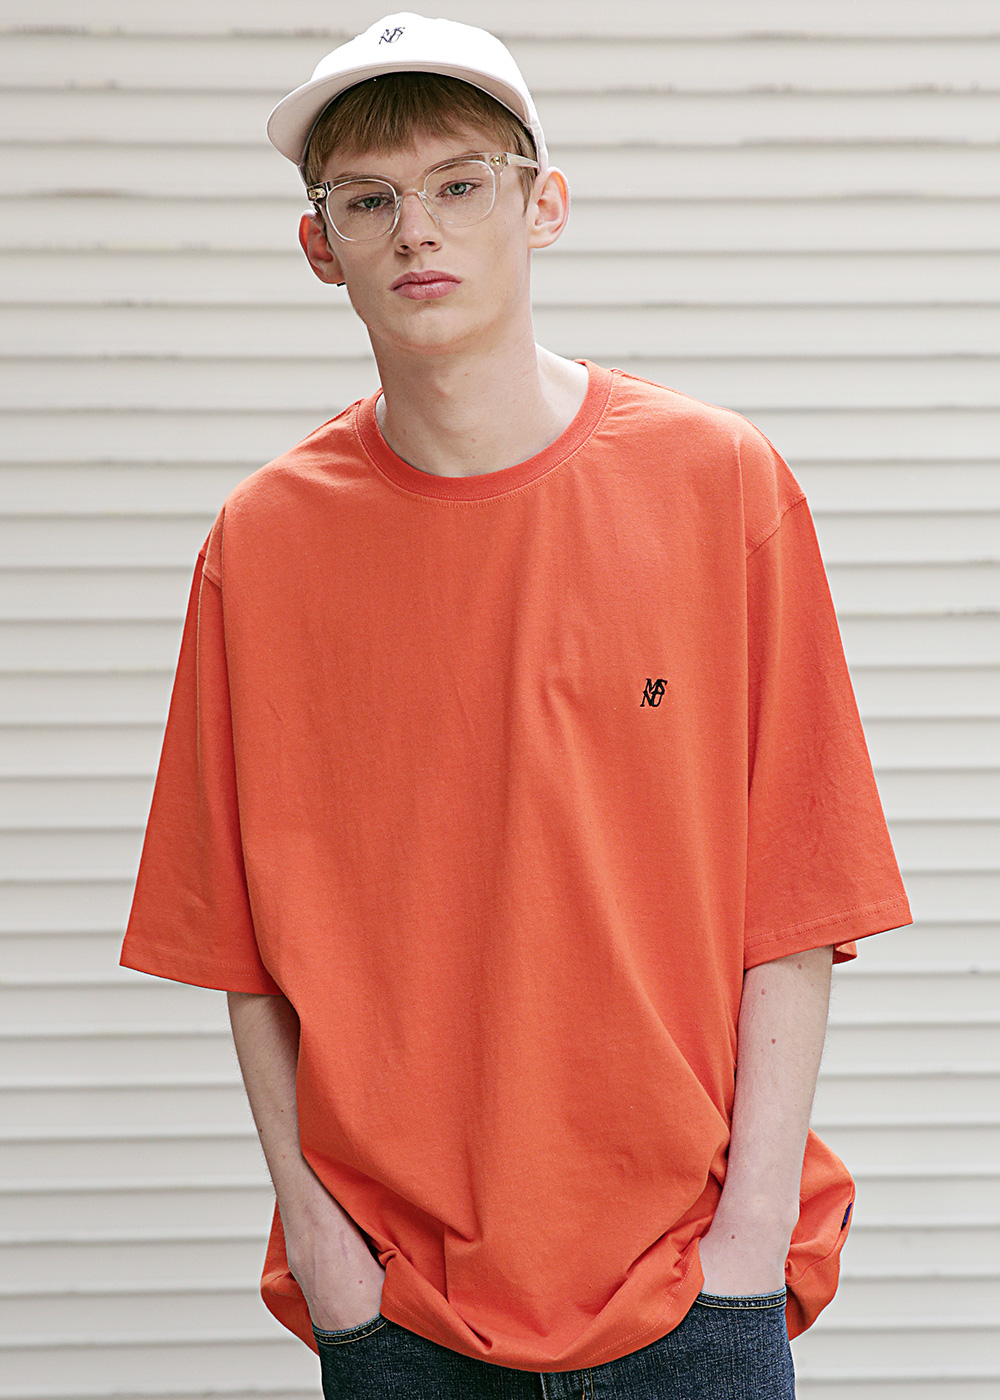 MSNU OVERSIZED T-SHIRTS MSETS004-OR